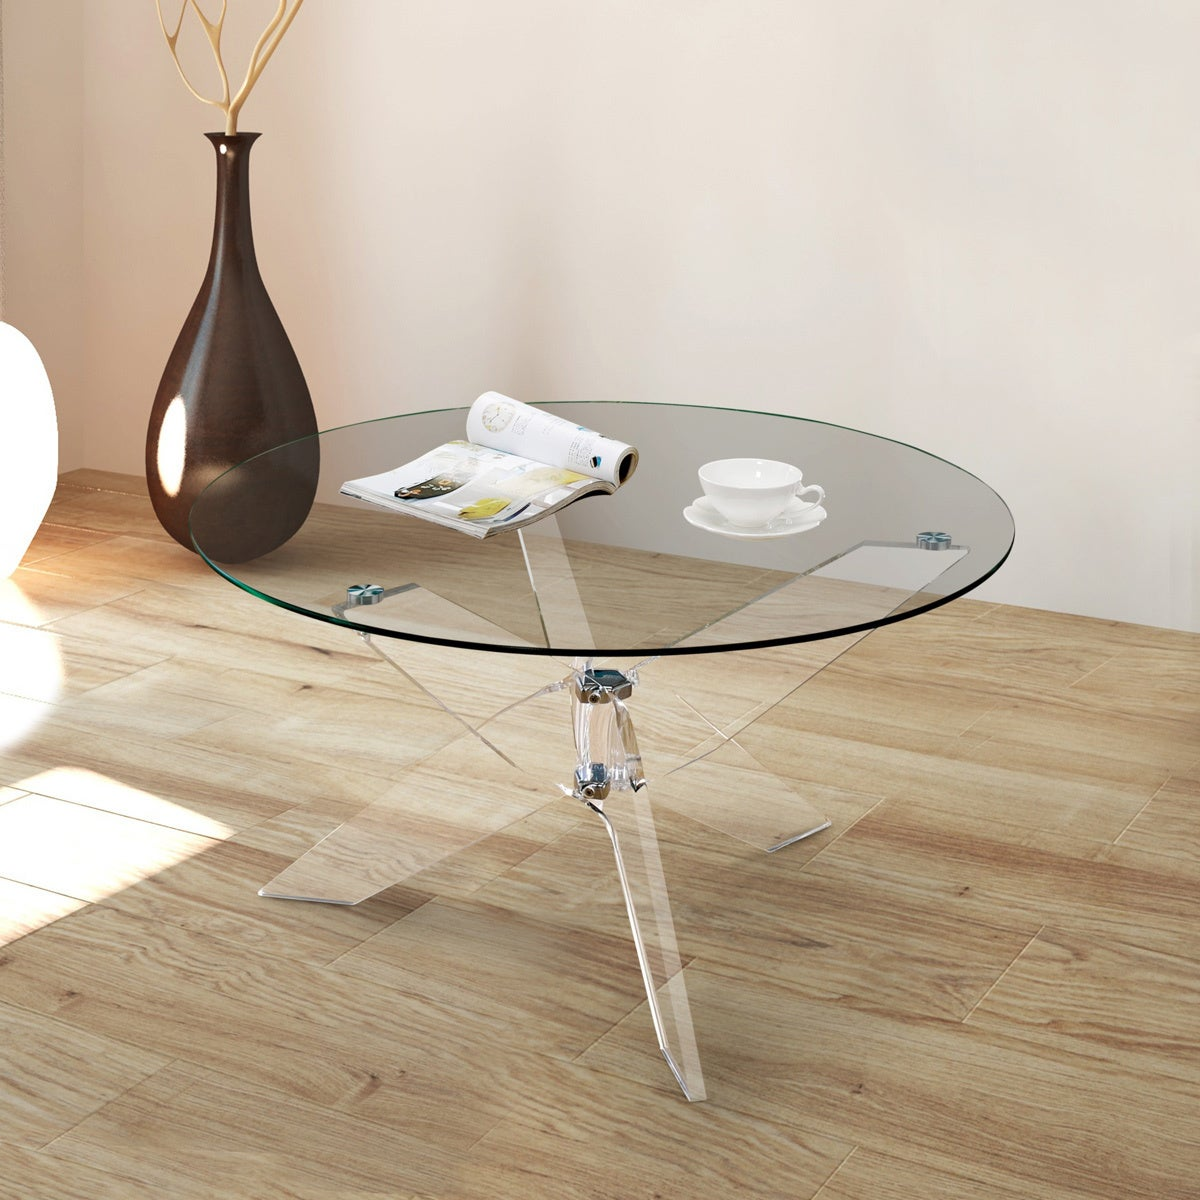 Furniture Of America Leras Contemporary Clear Acrylic Glass Top Round Coffee  Table   Free Shipping Today   Overstock.com   21758195